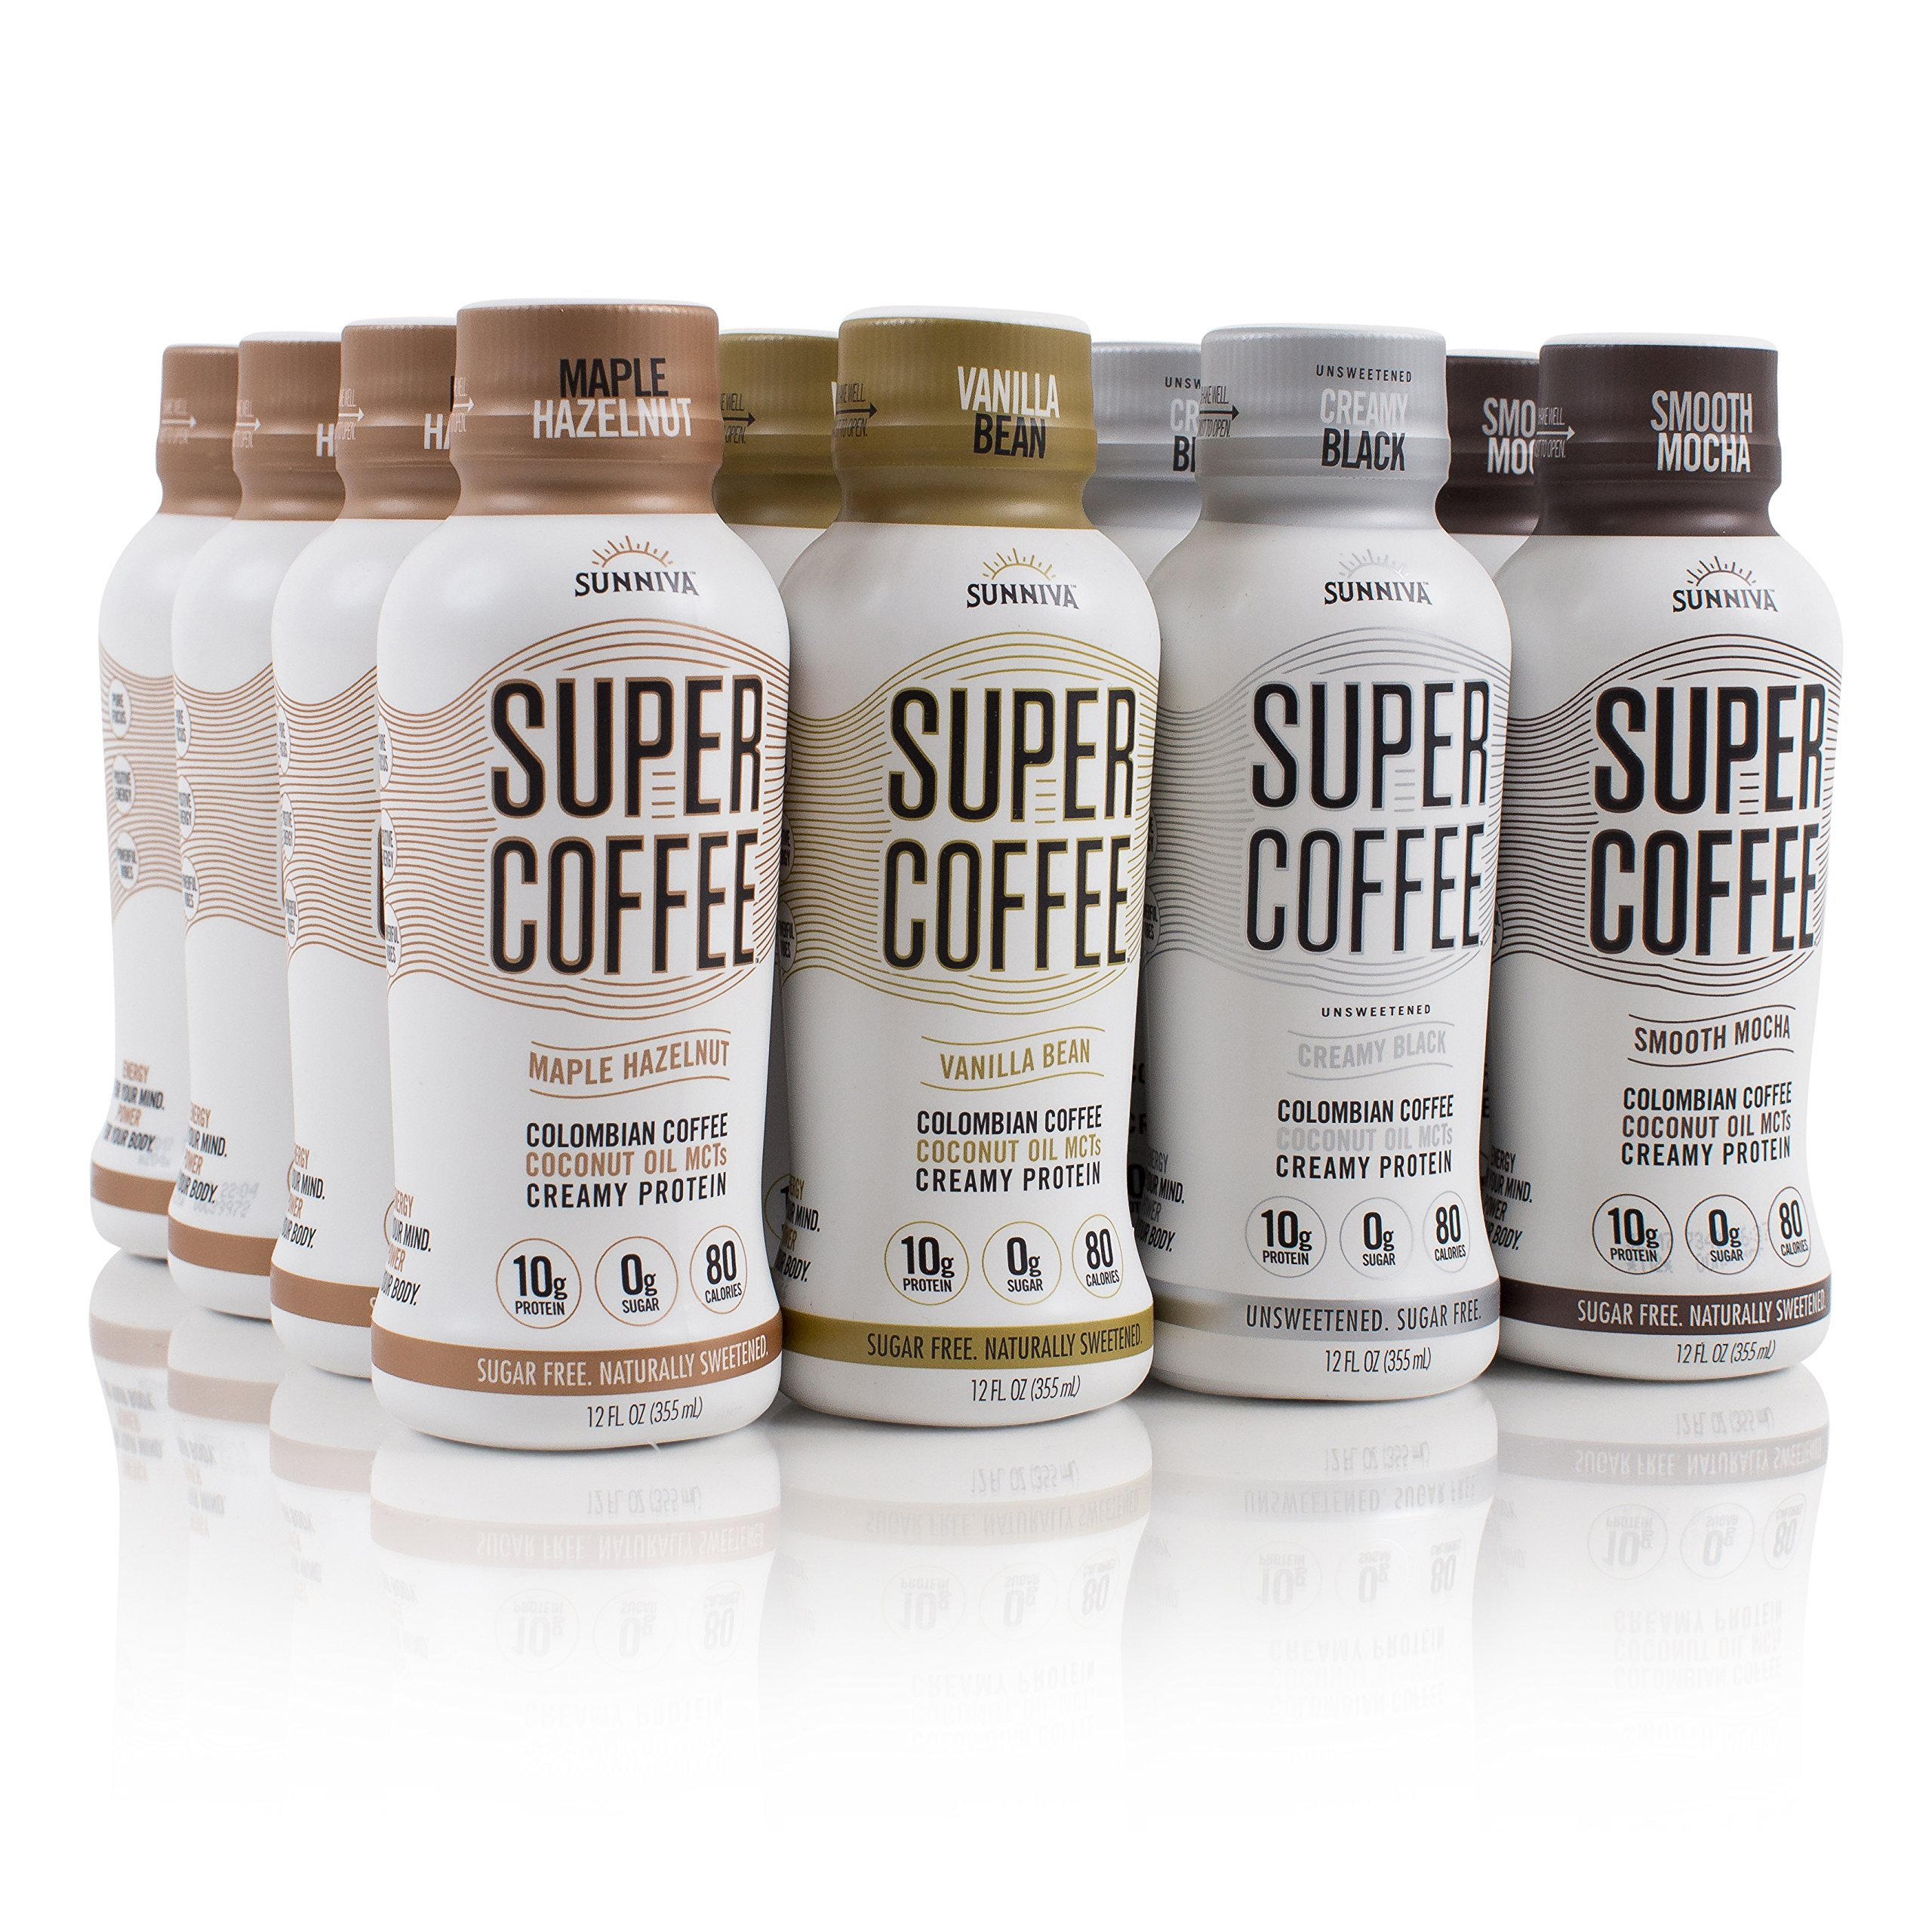 SUNNIVA Super Coffee 12 Variety Pack NEW Sugar-Free Formula, 10g Protein, Lactose Free, Soy Free, Gluten Free (3 each of Vanilla Bean, Smooth Mocha, Maple Hazelnut, and Creamy Black) by Sunniva Caffe